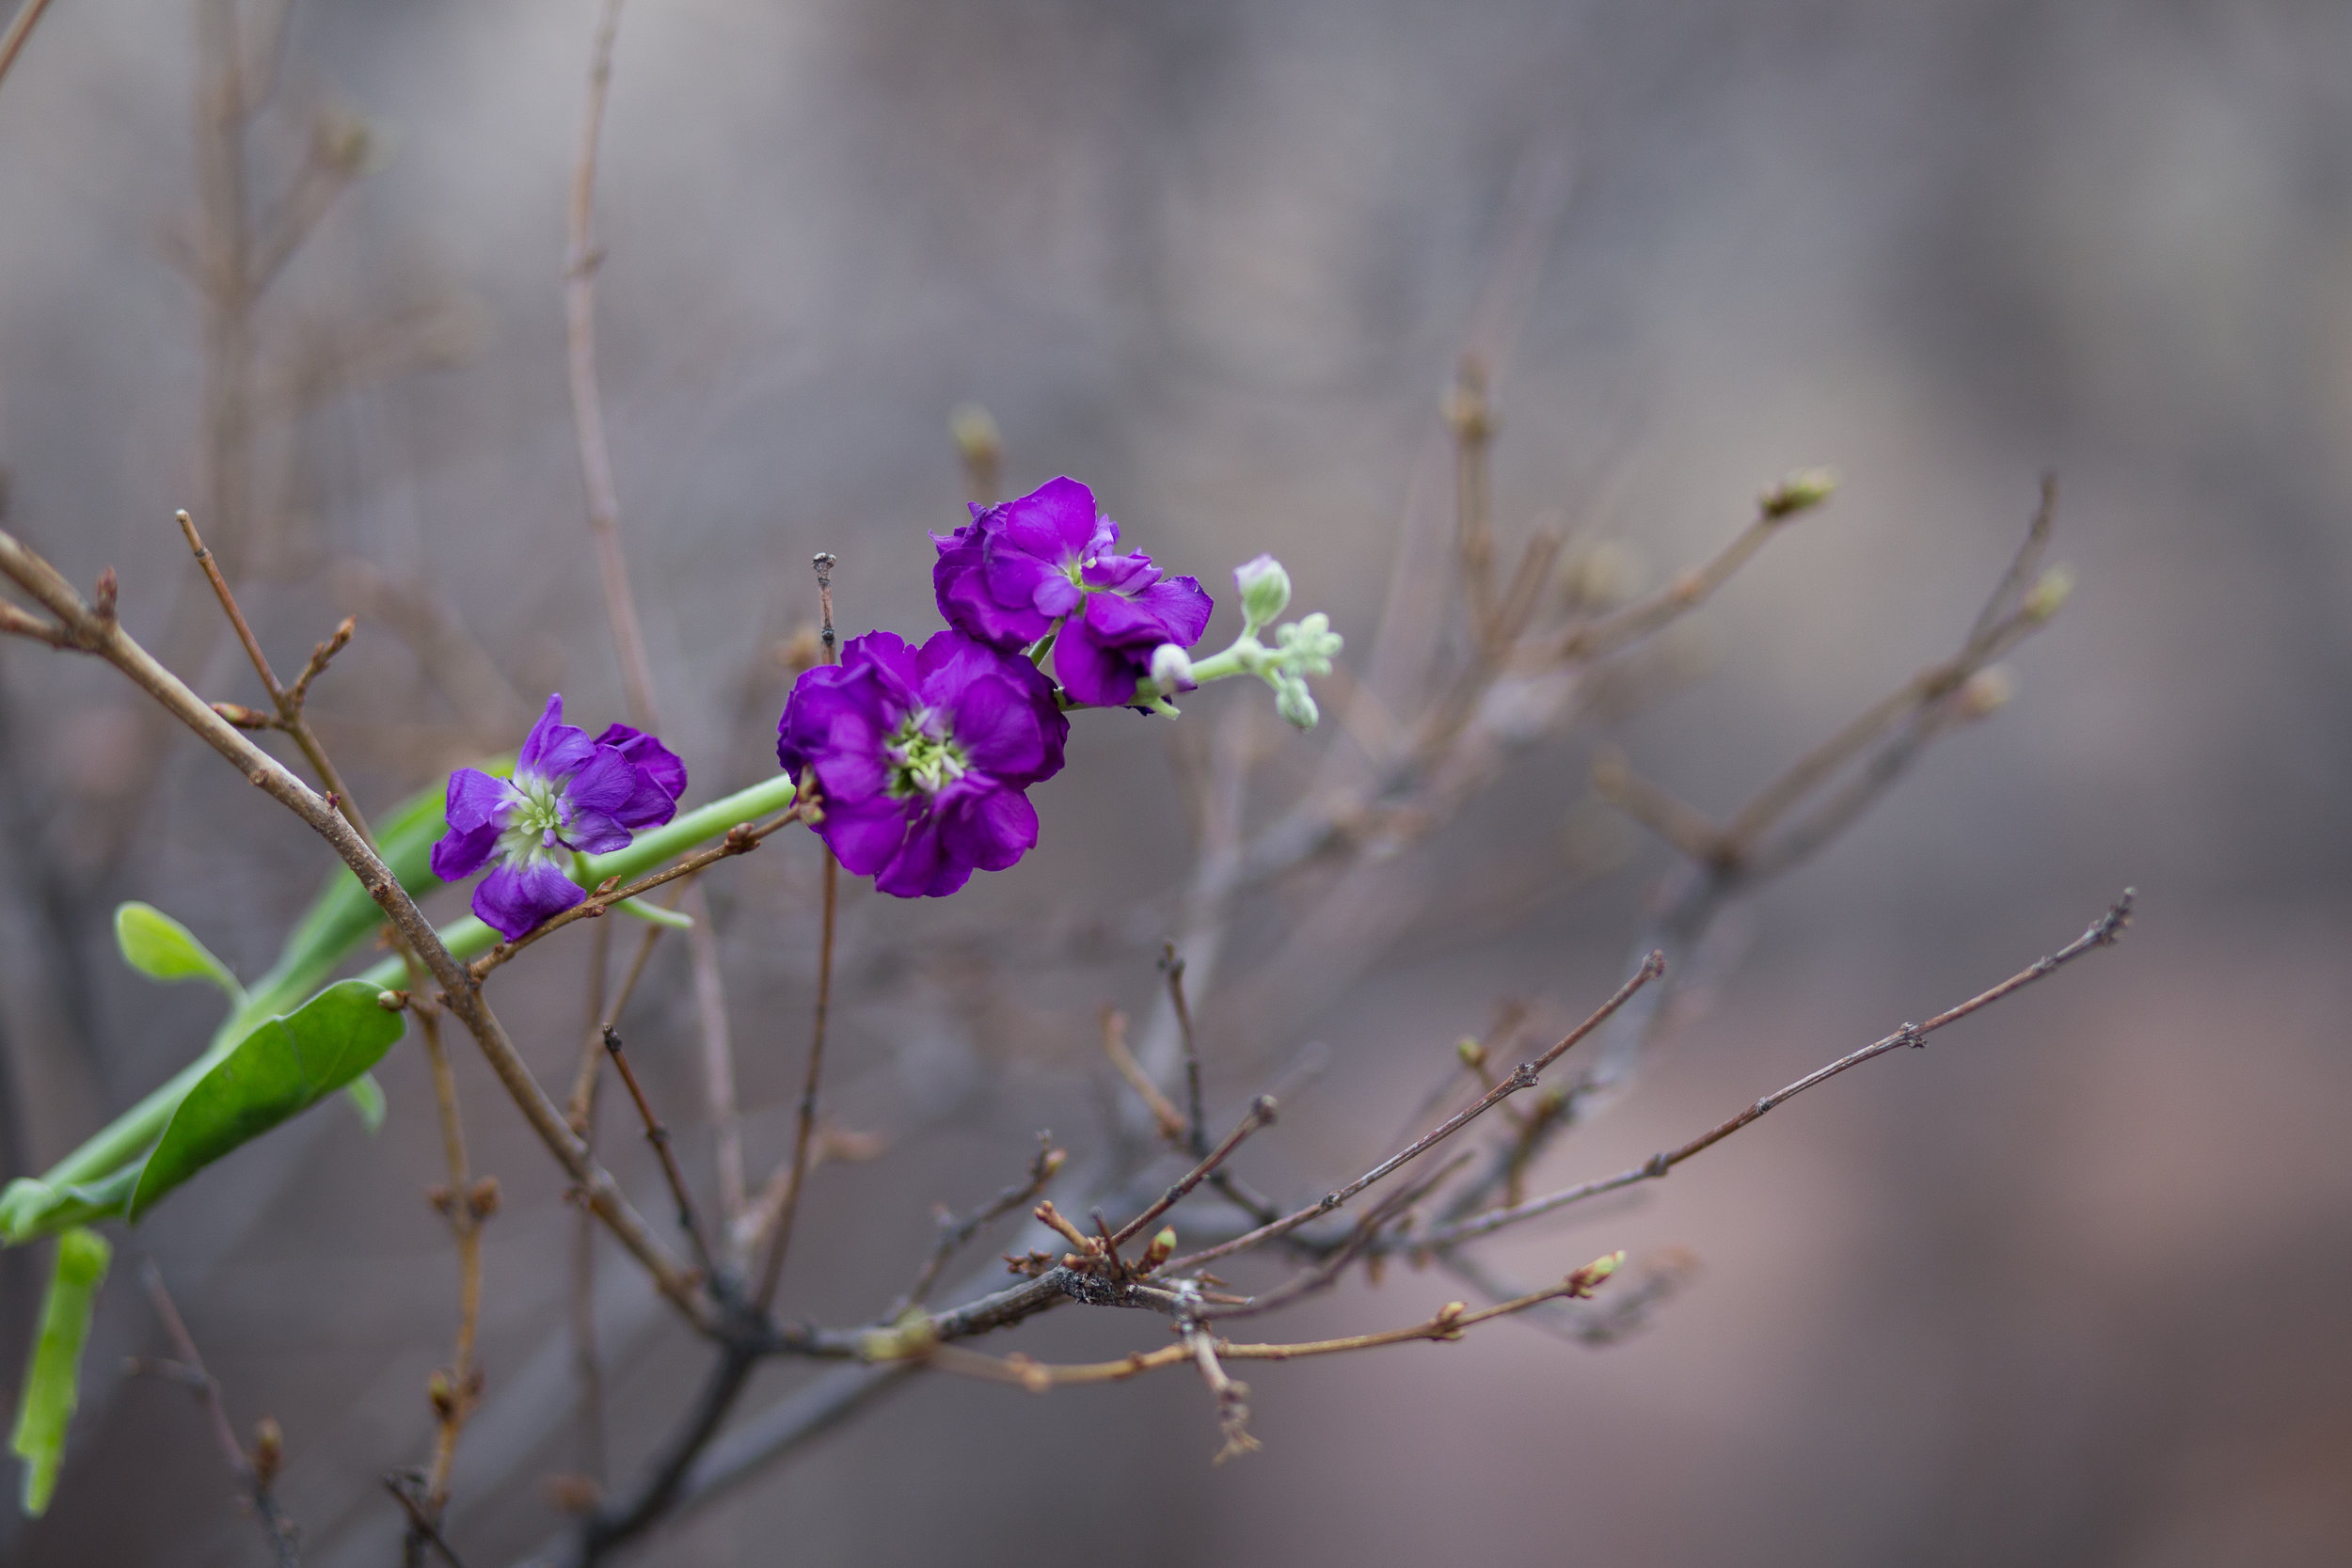 purple flower with branches